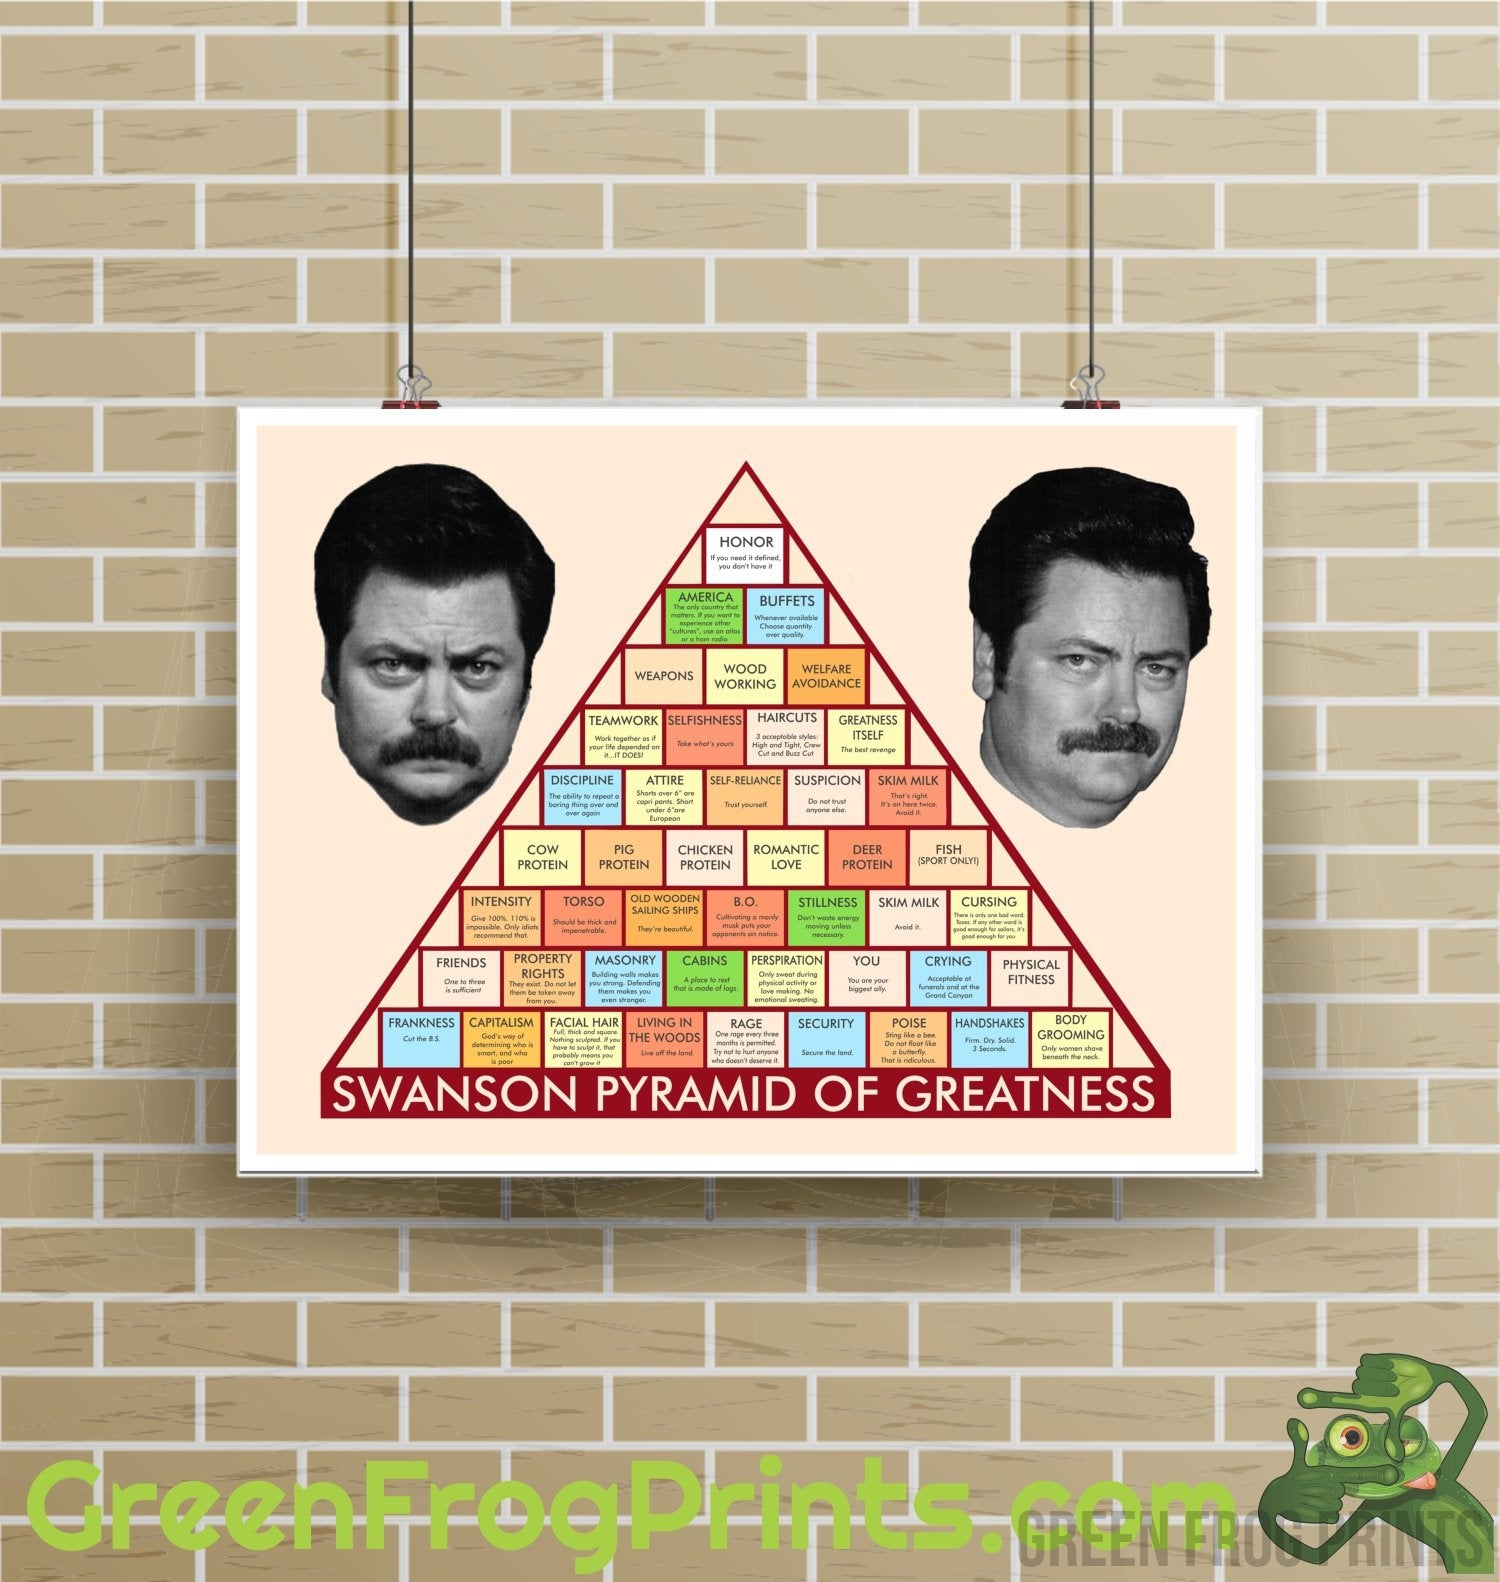 Ron Swanson Parks And Recreation Pyramid Of Greatness Poster Print